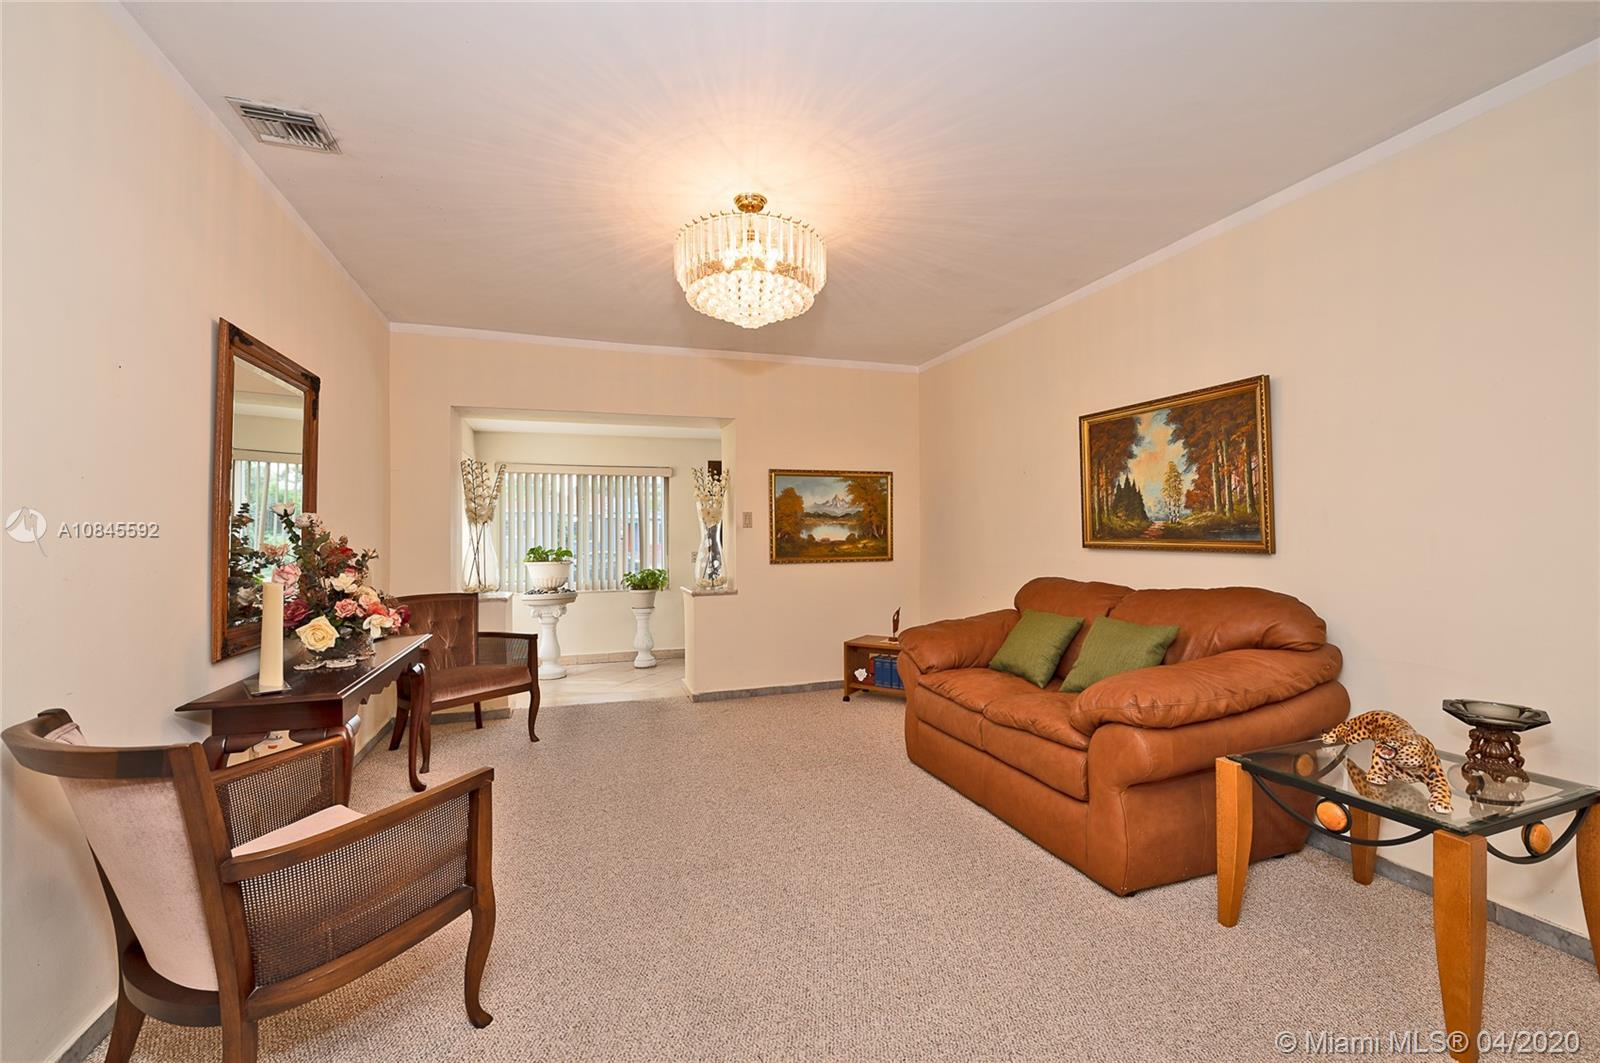 Formal Living Room with view of the Dining Room